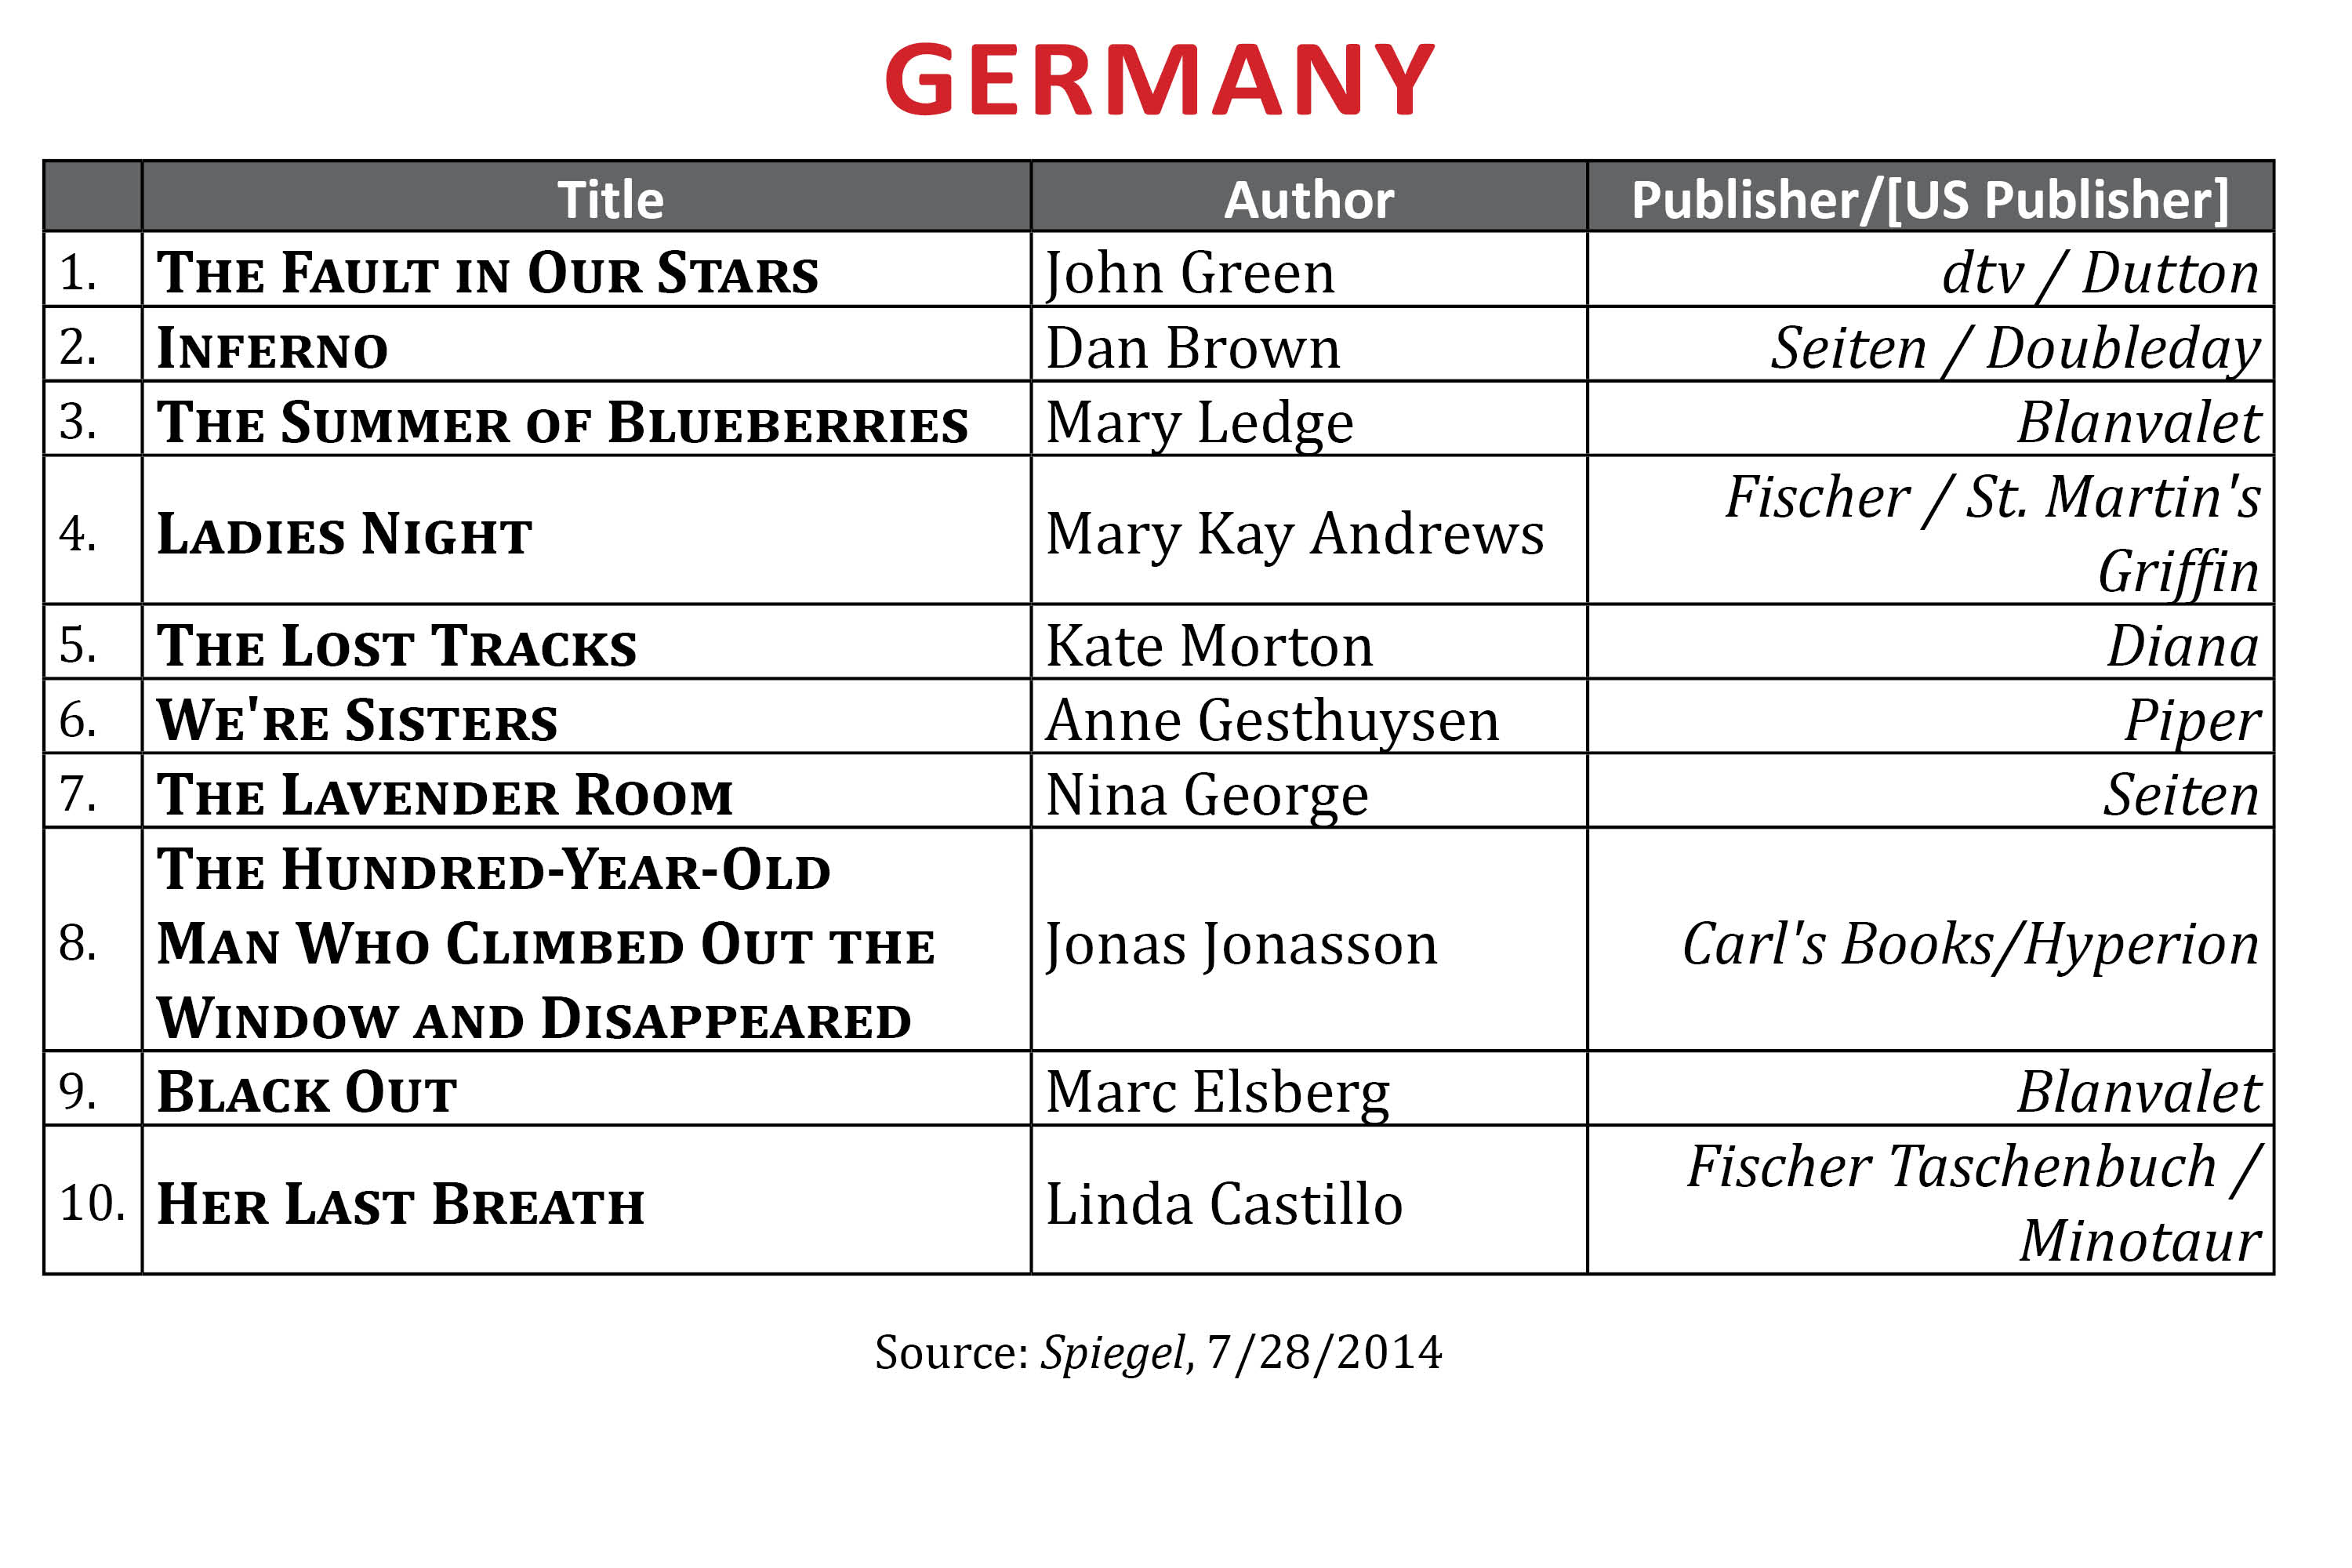 BestsellerJuly2014.Germany1